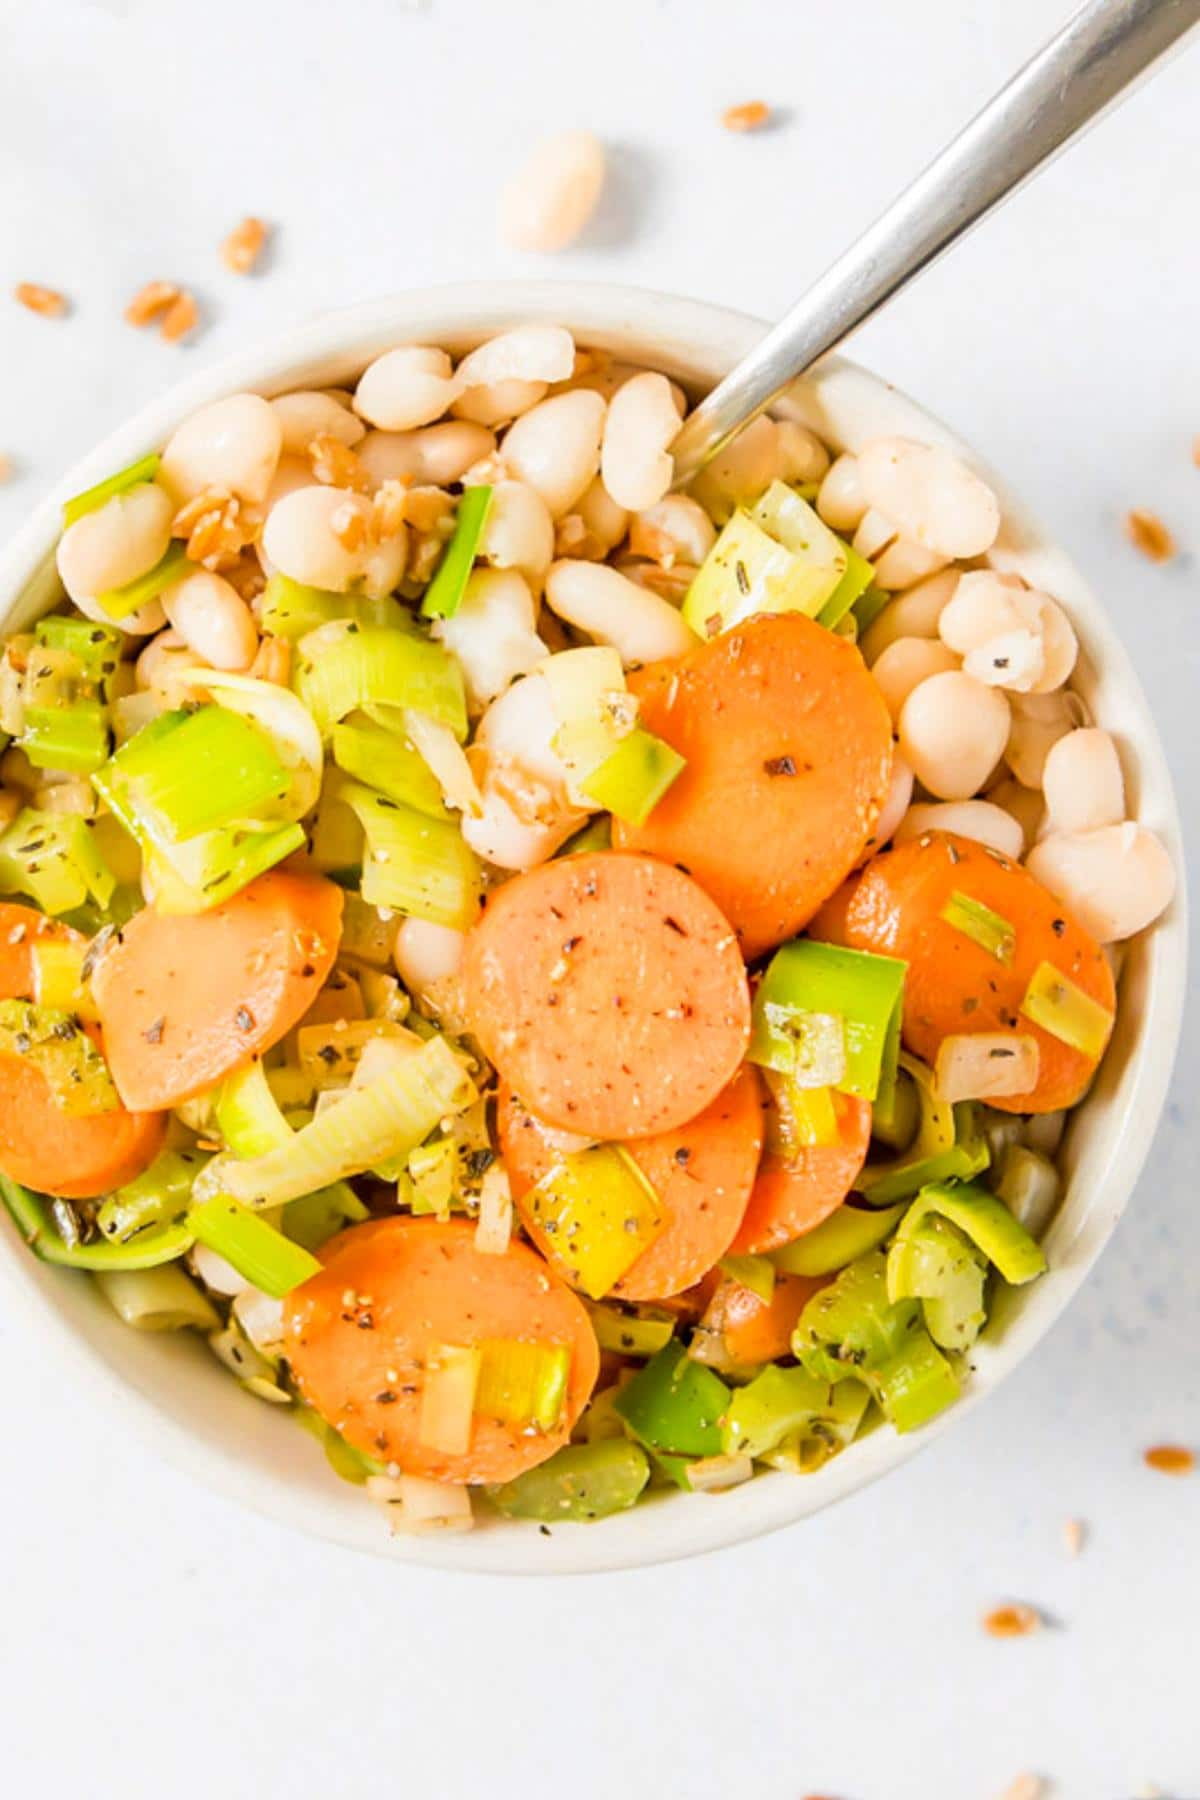 carrots, leeks, and white beans in a white bowl with a spoon in it